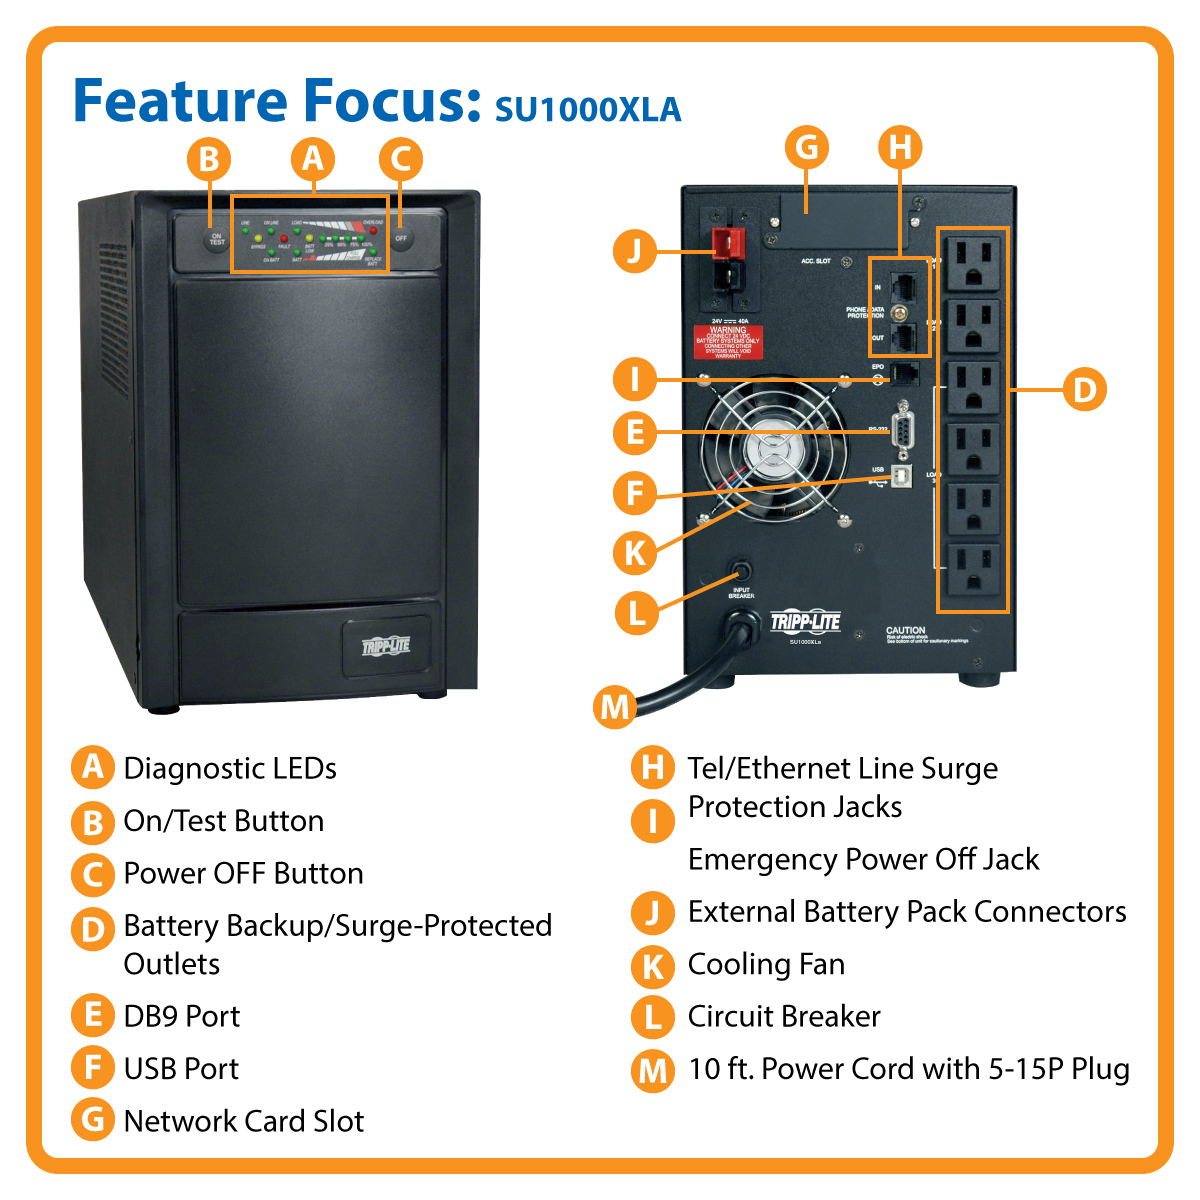 slide 1 of 6,show larger image, su1000xla smartonline® double-conversion sine wave tower ups with expandable runtime and network slot